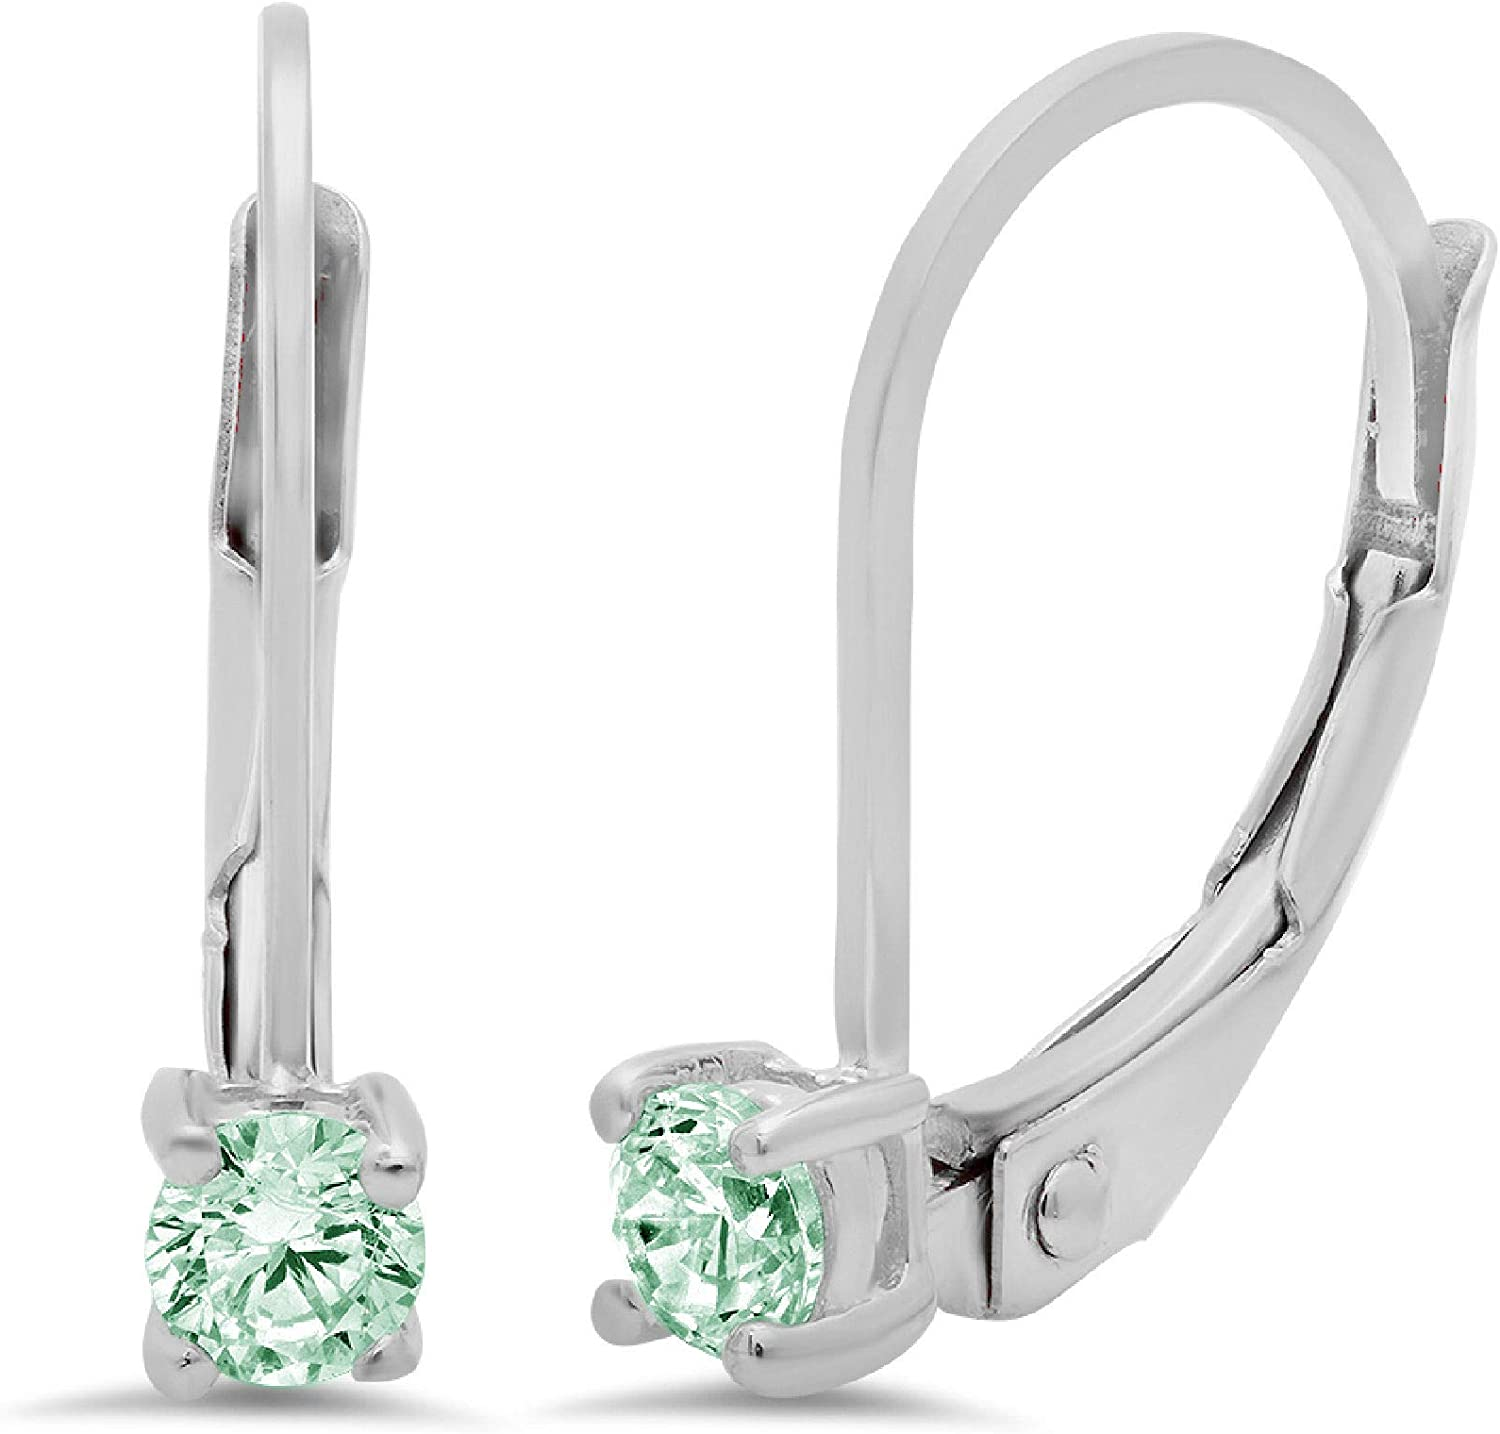 Clara Pucci 0.20 ct Brilliant Round Cut Solitaire VVS1 Flawless Green Simulated Diamond Gemstone Pair of Lever back Drop Dangle Earrings Solid 18K White Gold